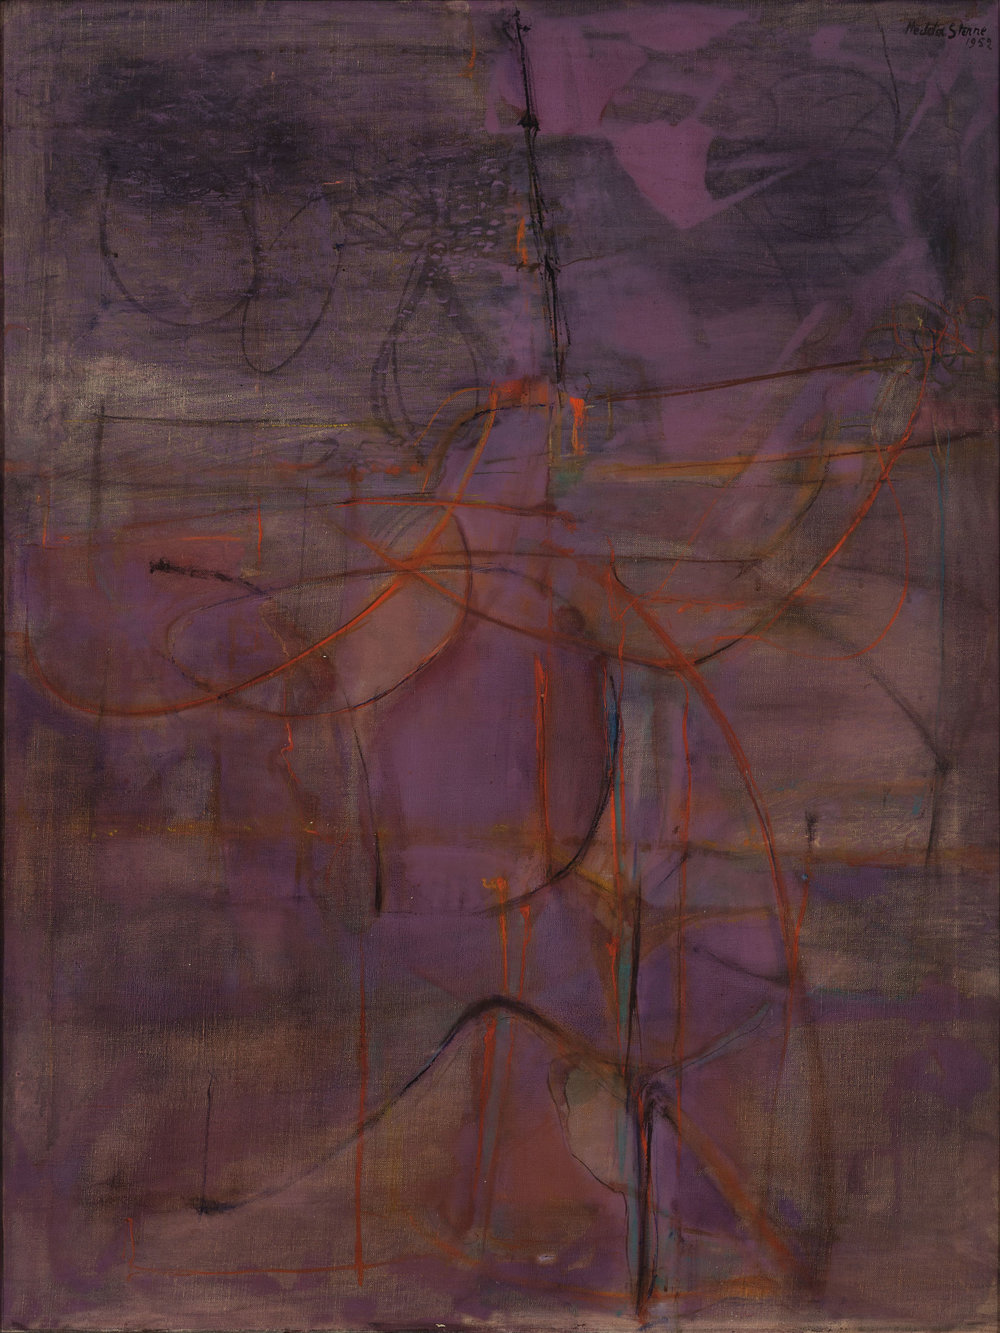 Hedda Sterne, Structure #IV, 1952, Oil on canvas, 39 3/4 in. x 29 3/4 in.